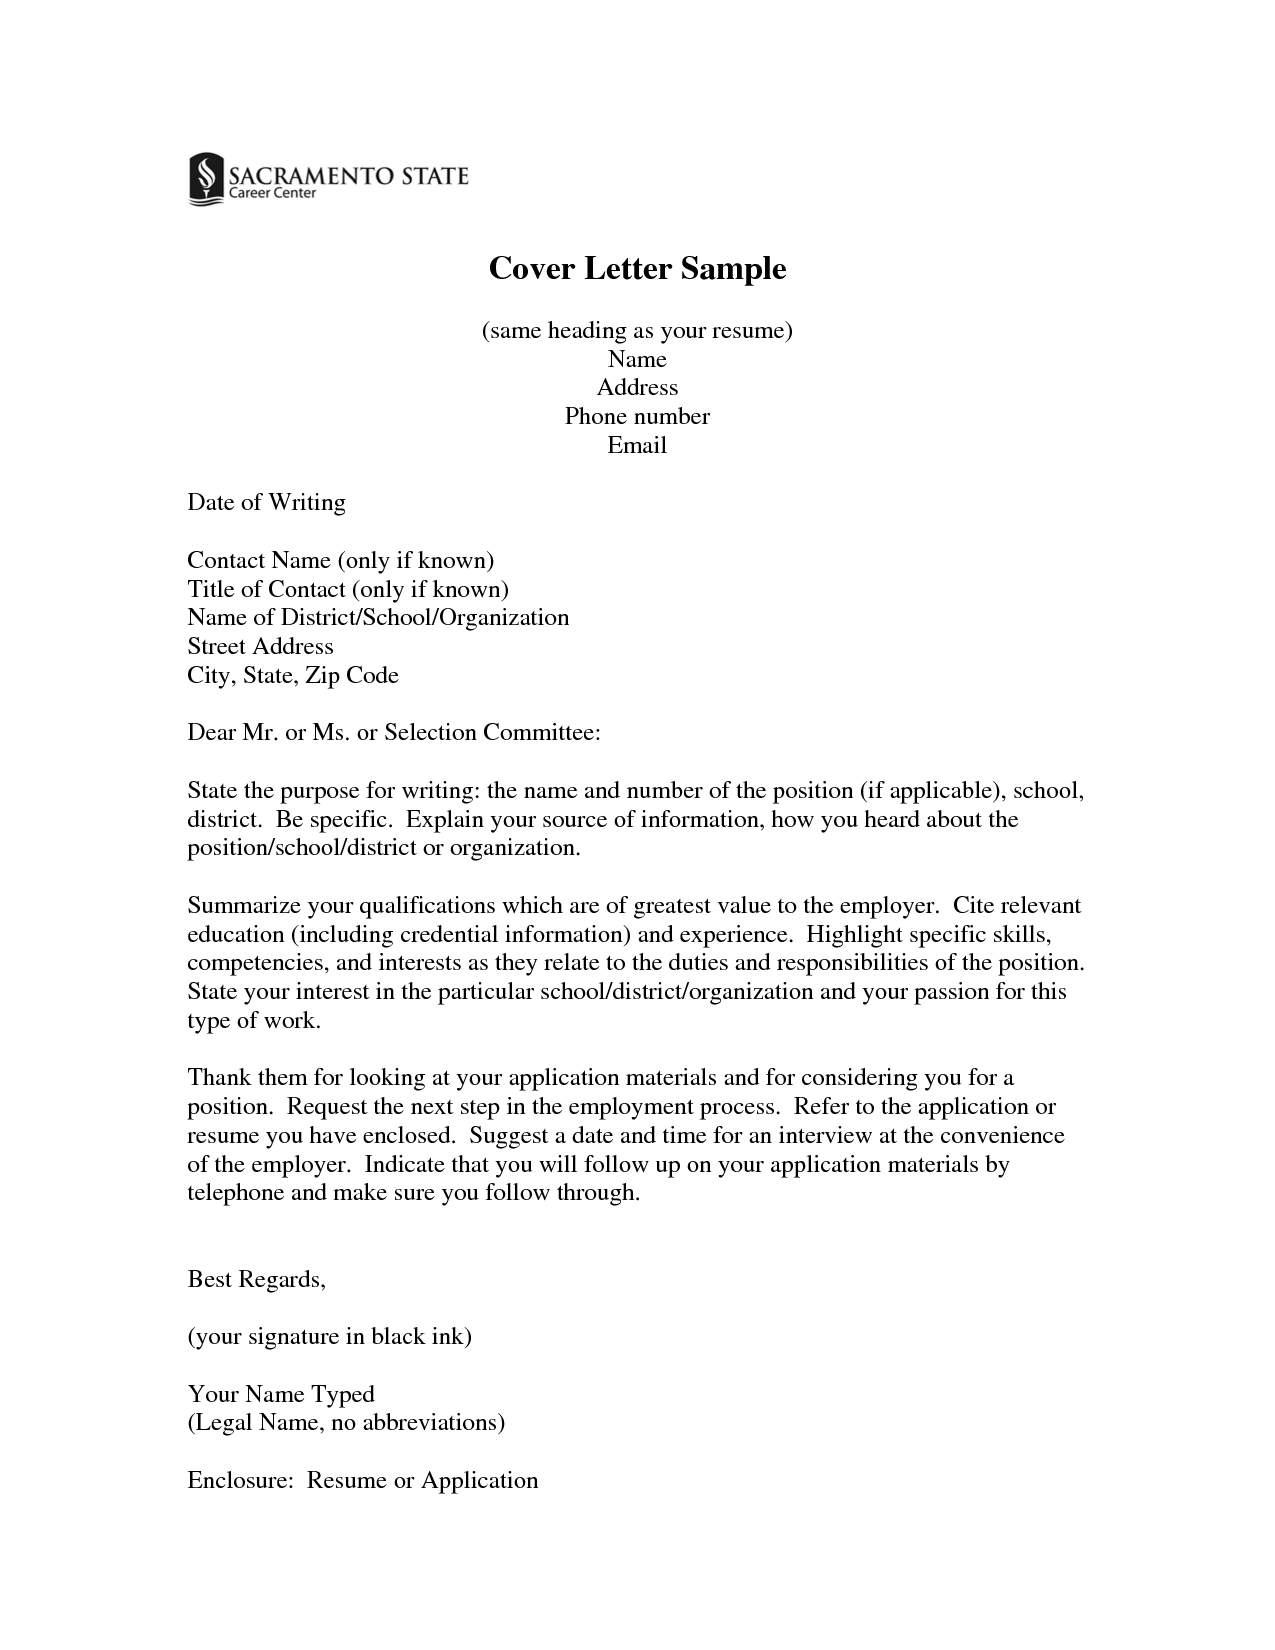 same cover letters for resume Cover Letter Sample same